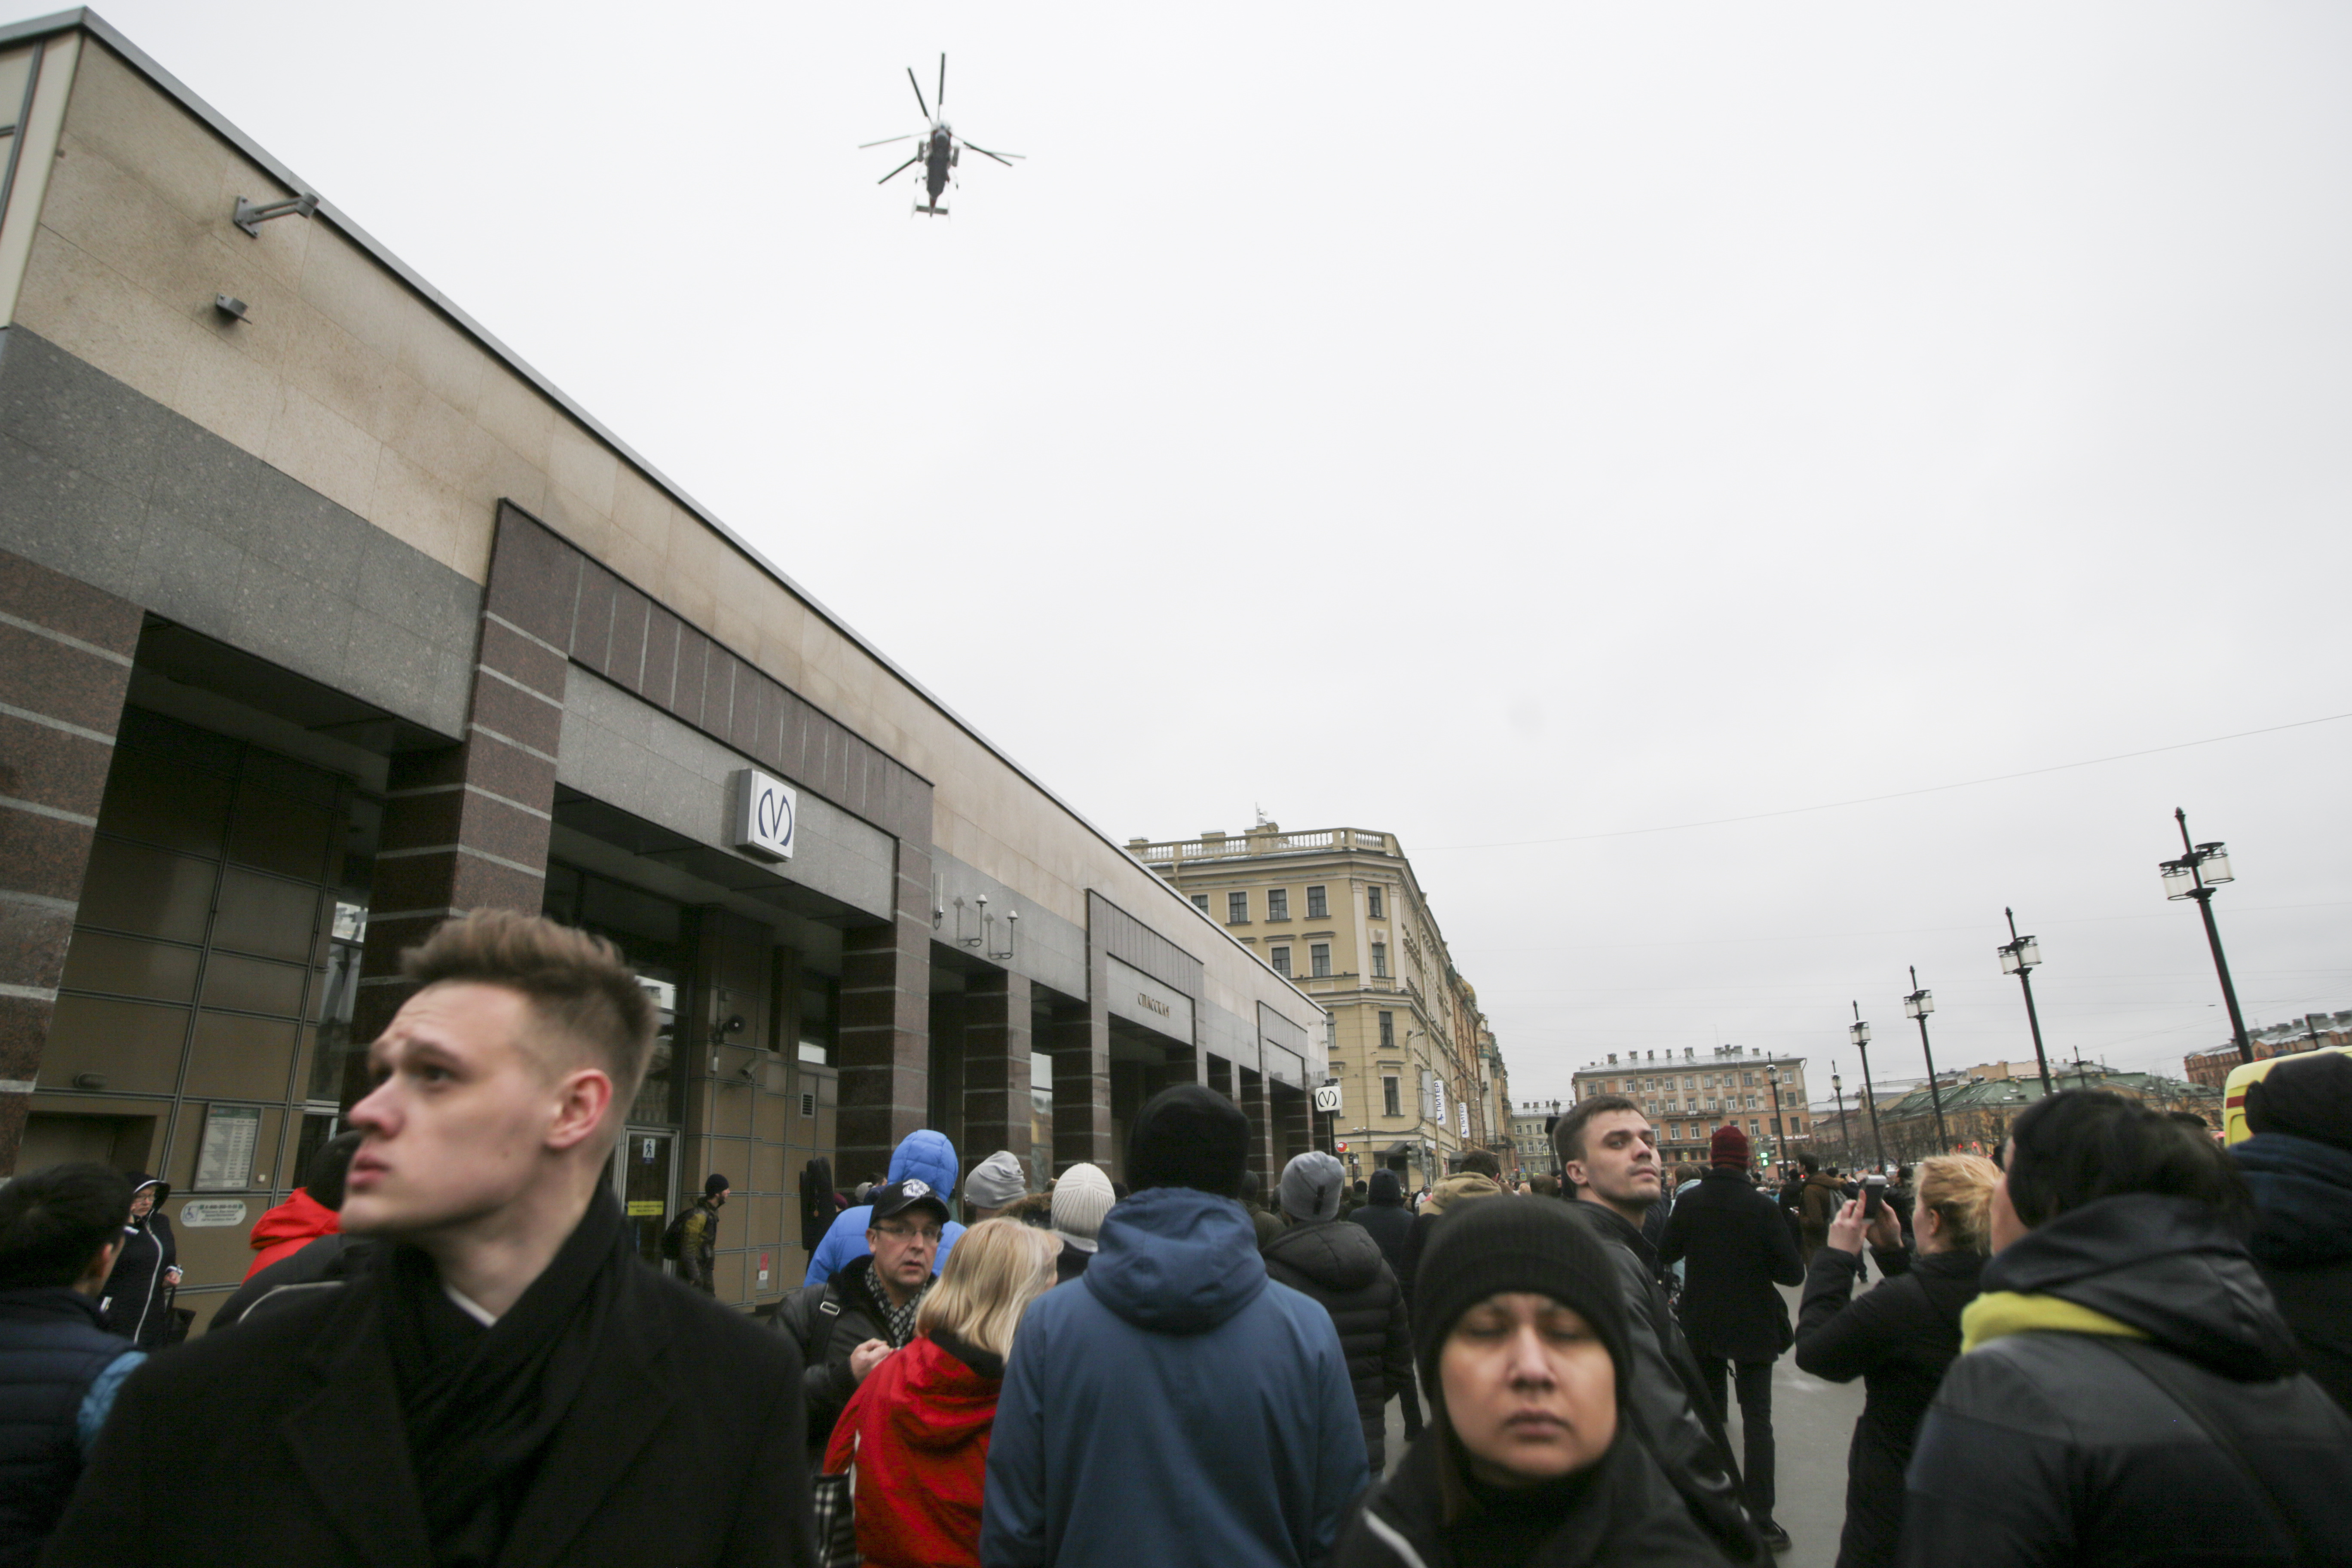 People walk past the entrance of Spasskaya subway station after a explosion in St.Petersburg's subway, Russia, Monday, April 3, 2017. The subway in the Russian city of St. Petersburg is reporting that there are fatalities and several people have been injured in an explosion on a subway train. (AP Photo/Evgenii Kurskov)